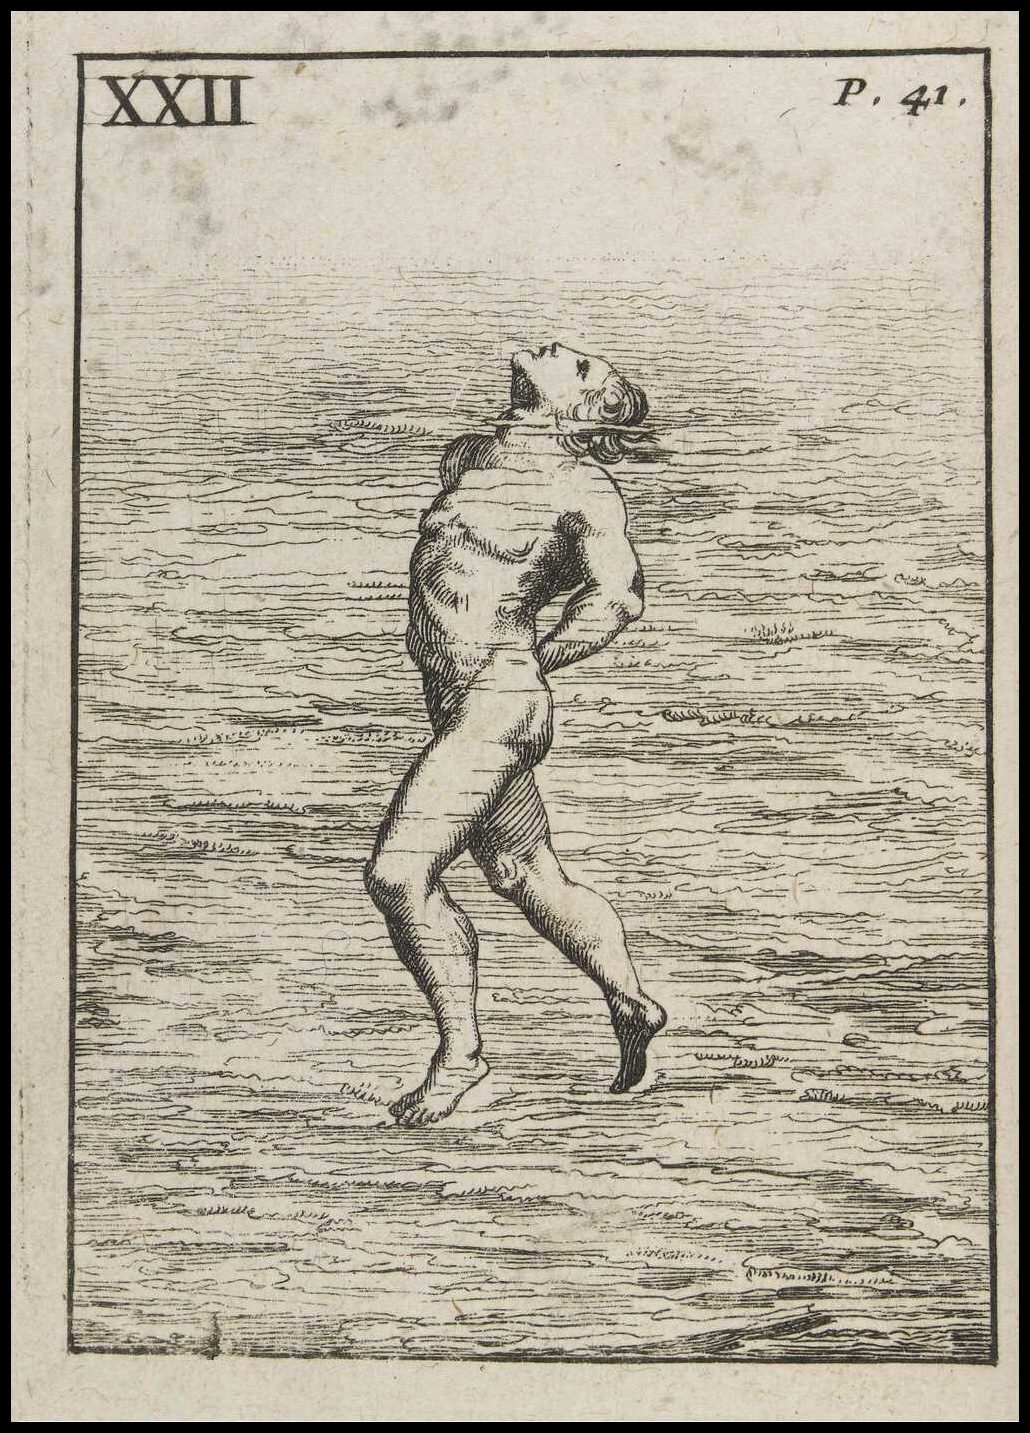 engraved swimmer illustration